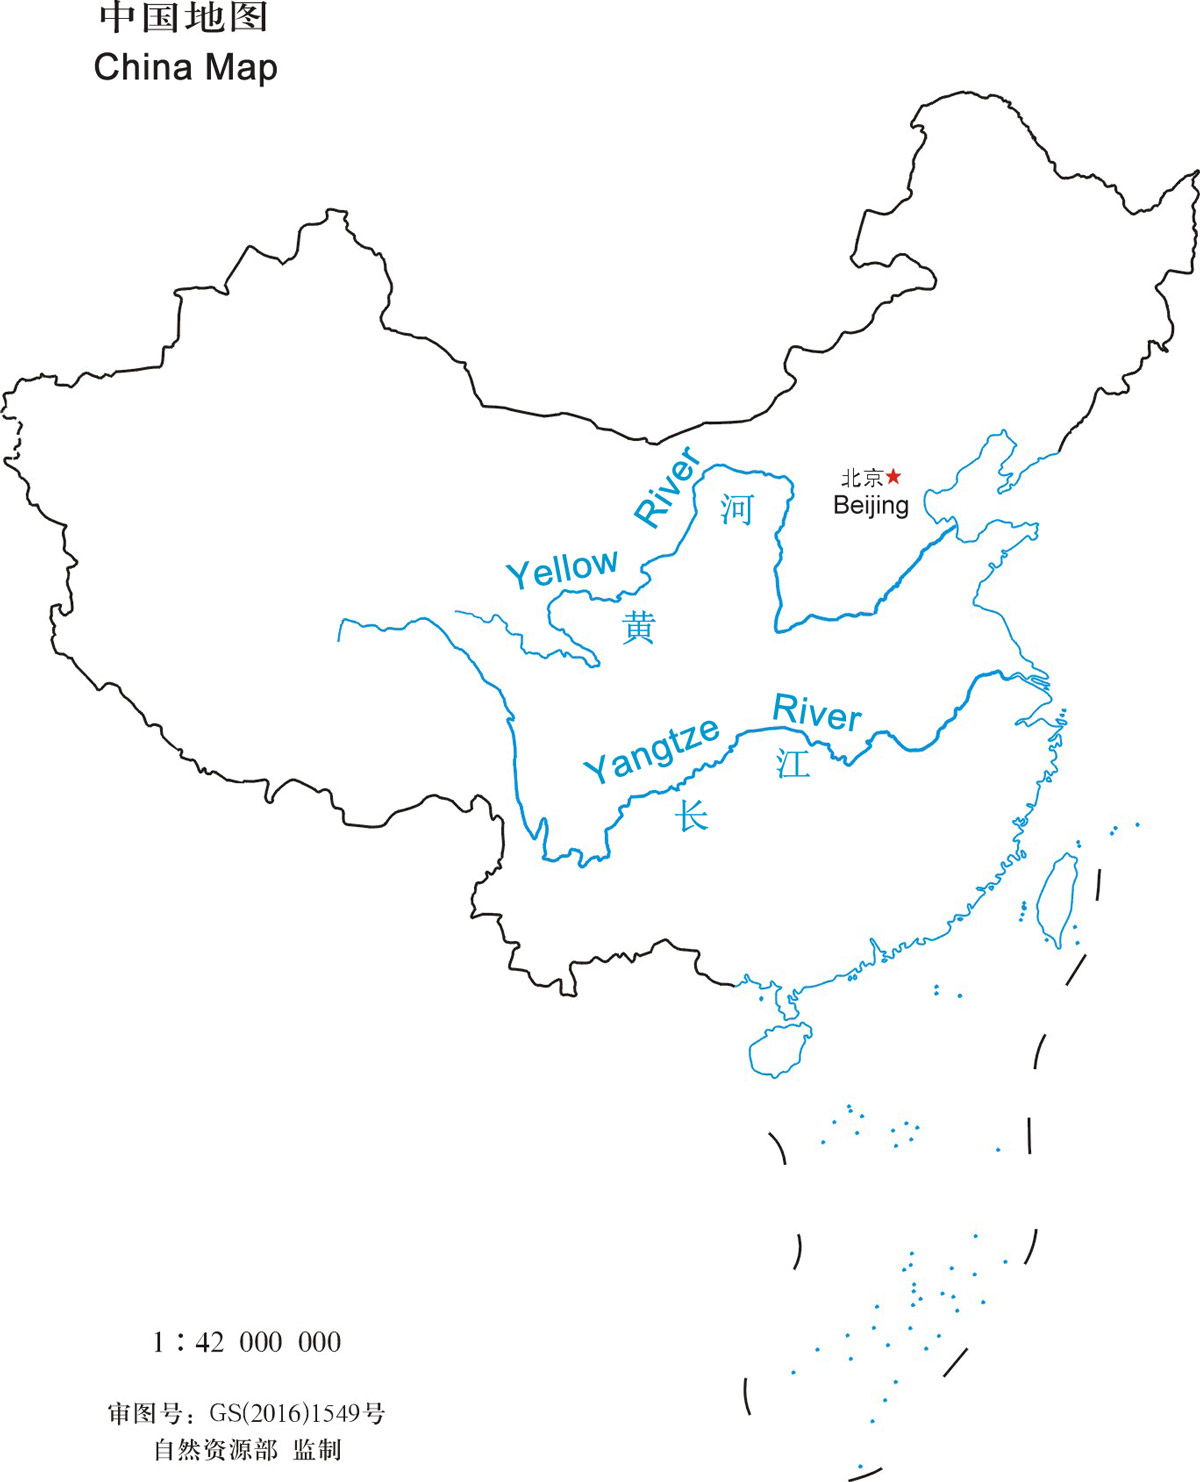 China Map Rivers China Rivers Map 2019, Important Rivers in China